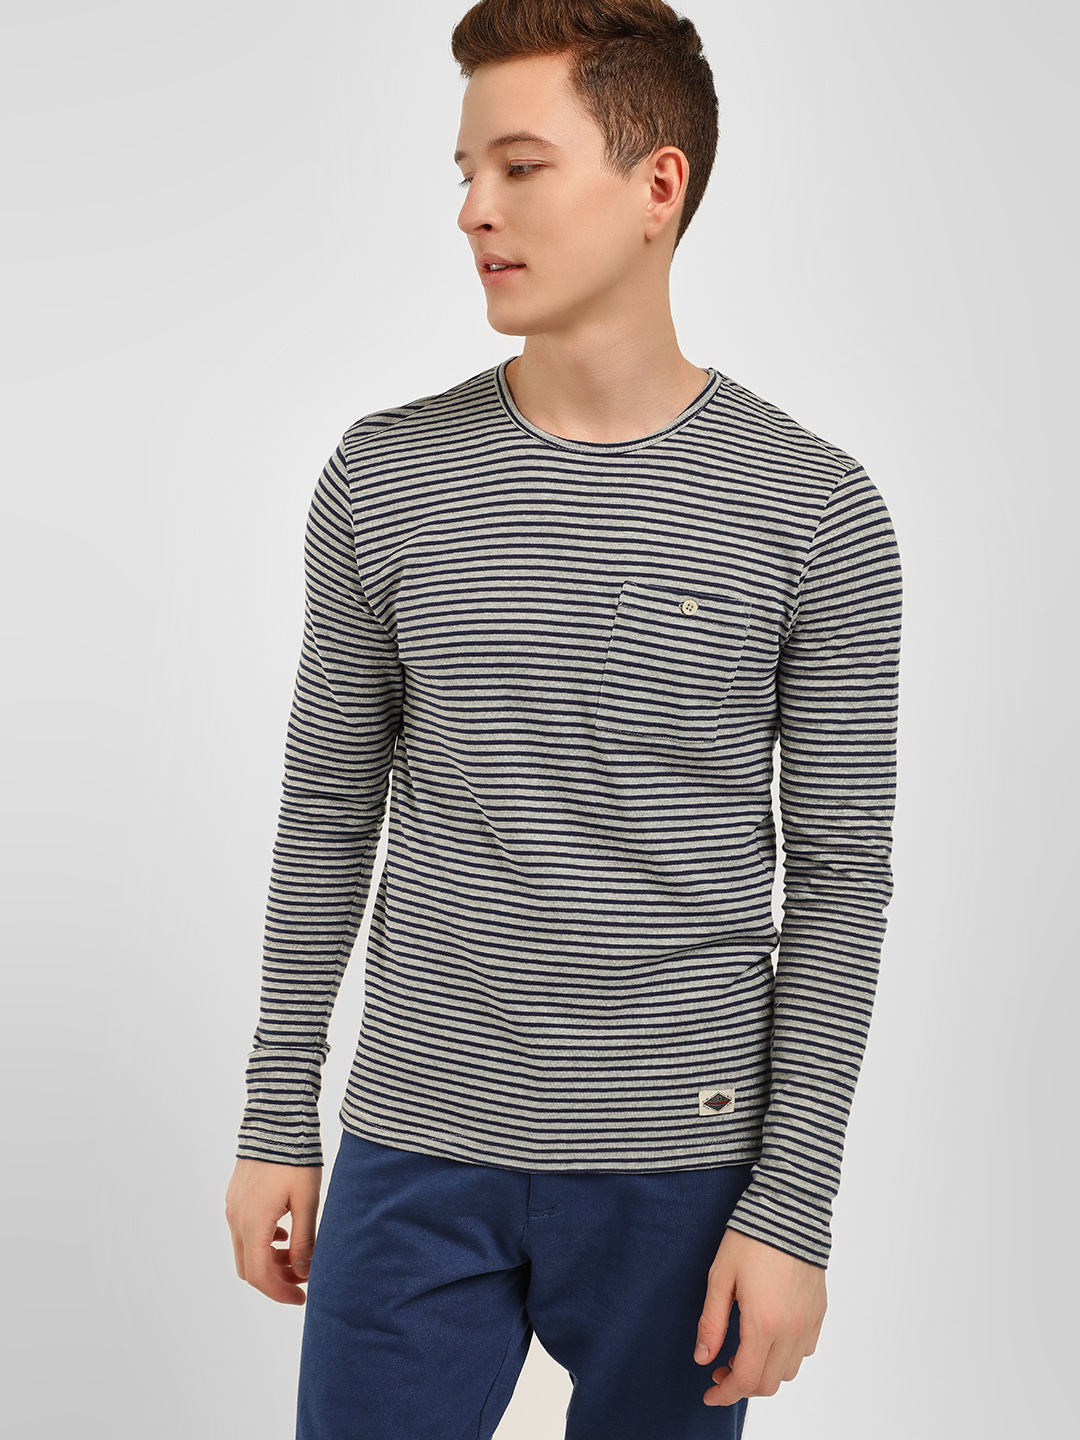 Celio Blue Crew Neck Striped T-Shirt 1